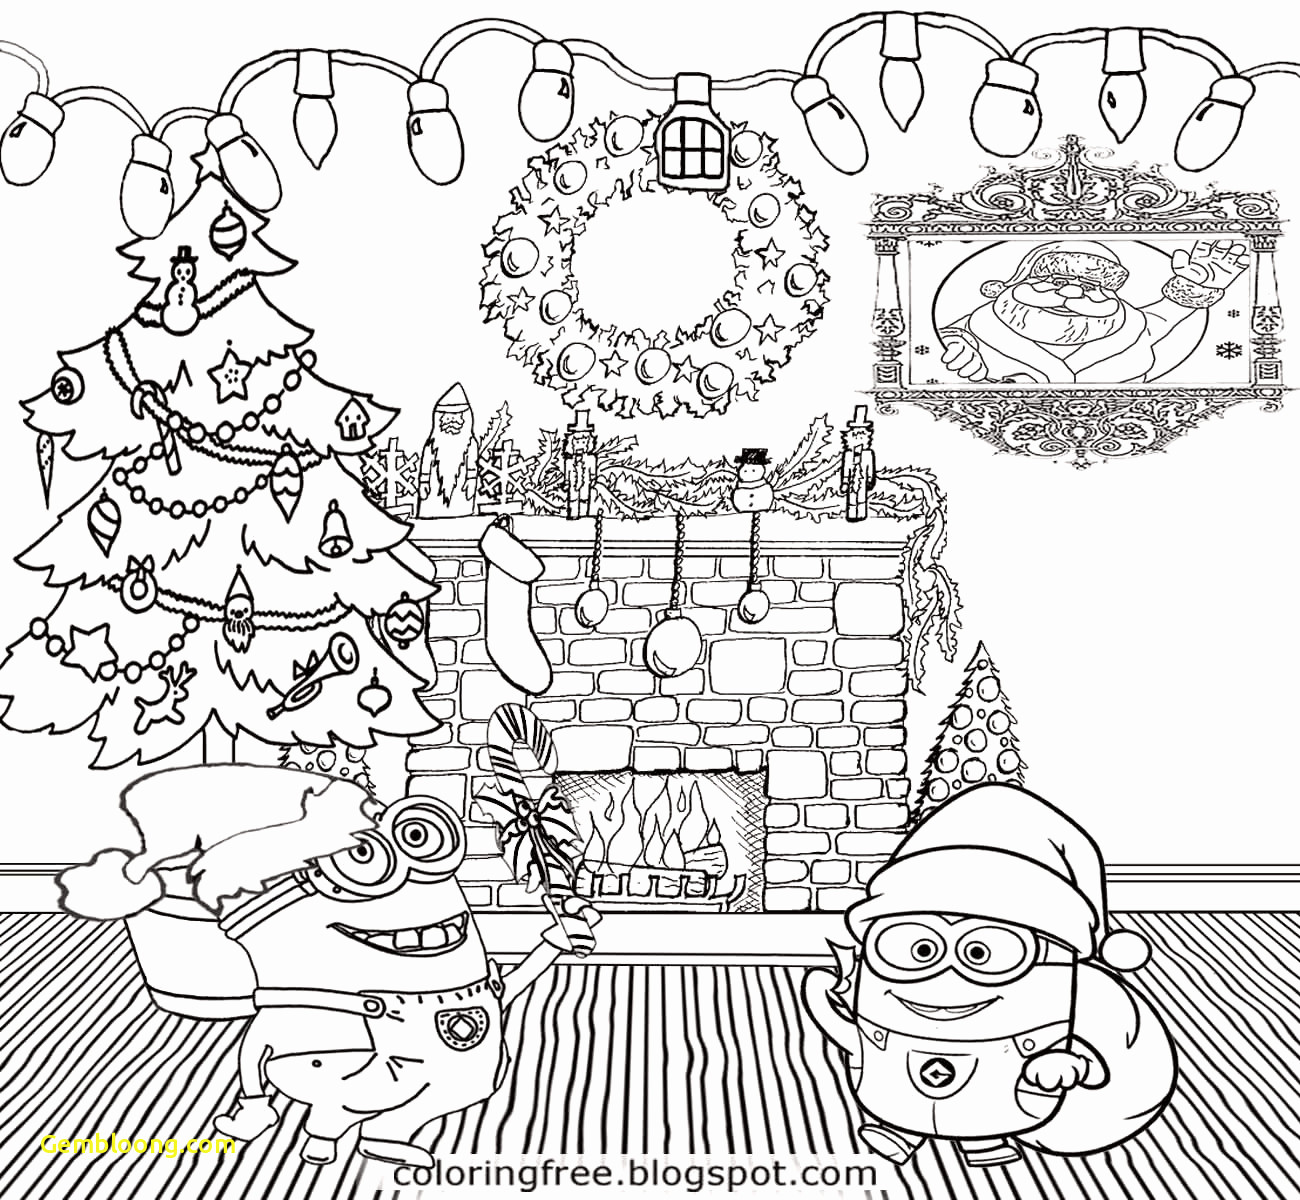 Merry Christmas Coloring Pages That Say With Free For Kids